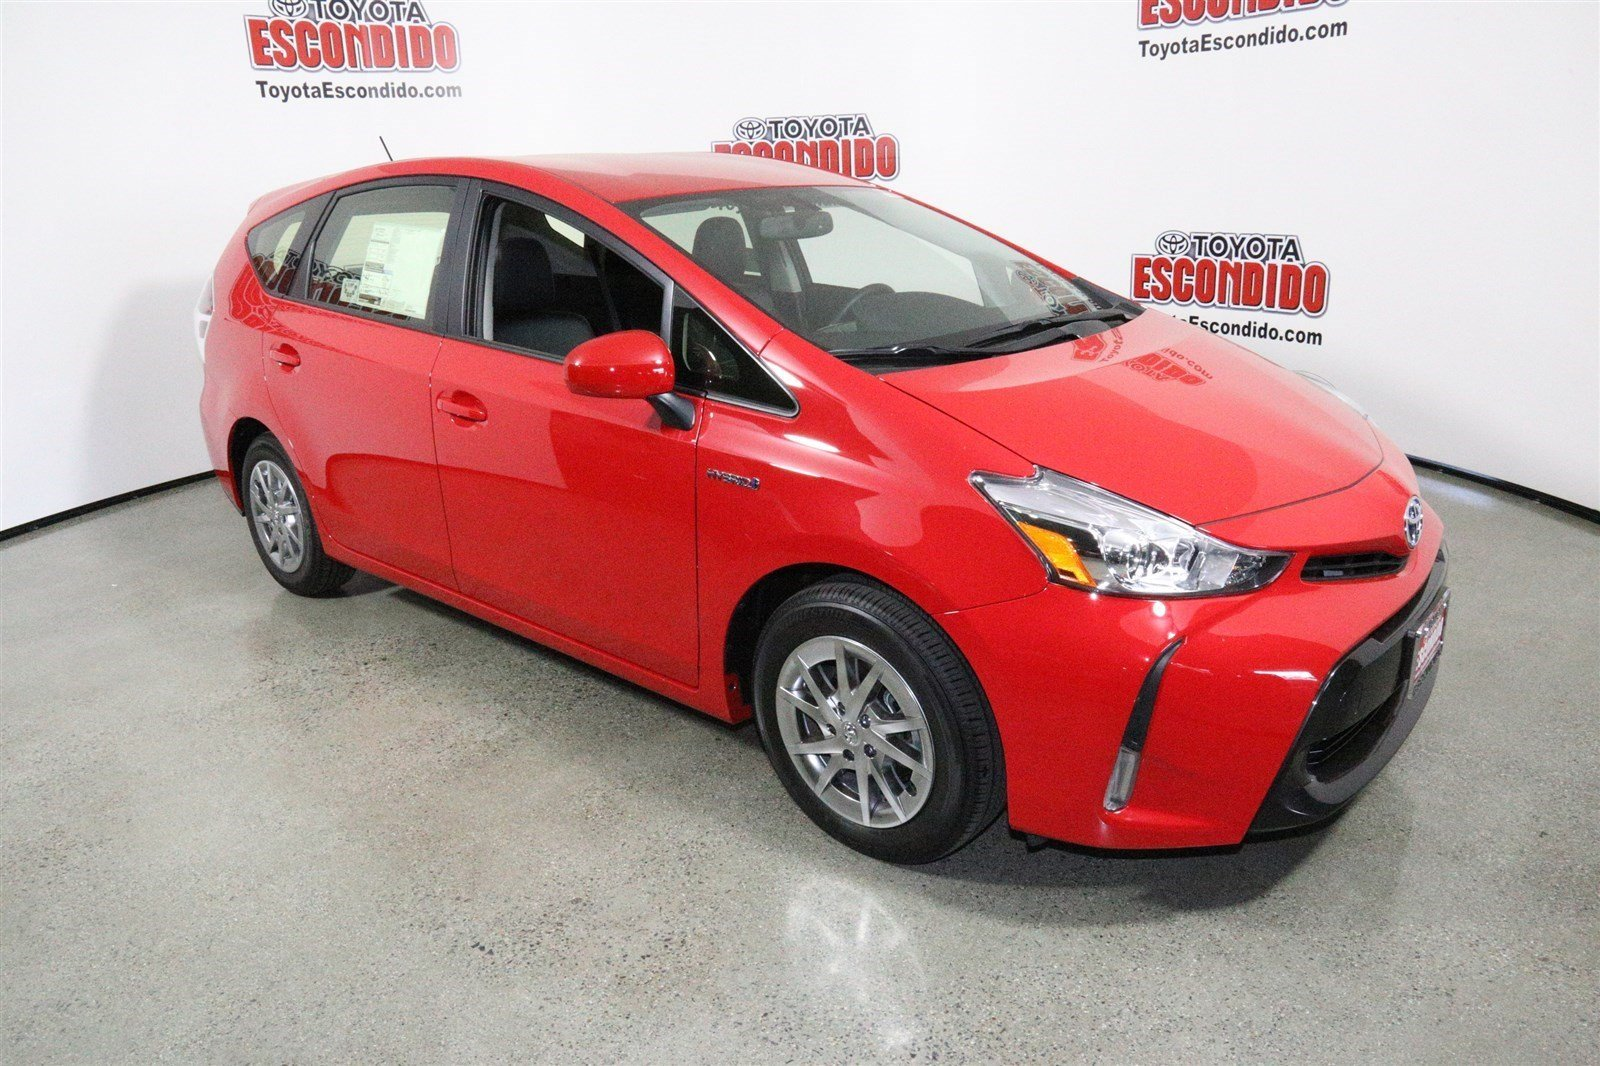 new 2017 toyota prius v four station wagon in escondido 1012739 toyota escondido. Black Bedroom Furniture Sets. Home Design Ideas